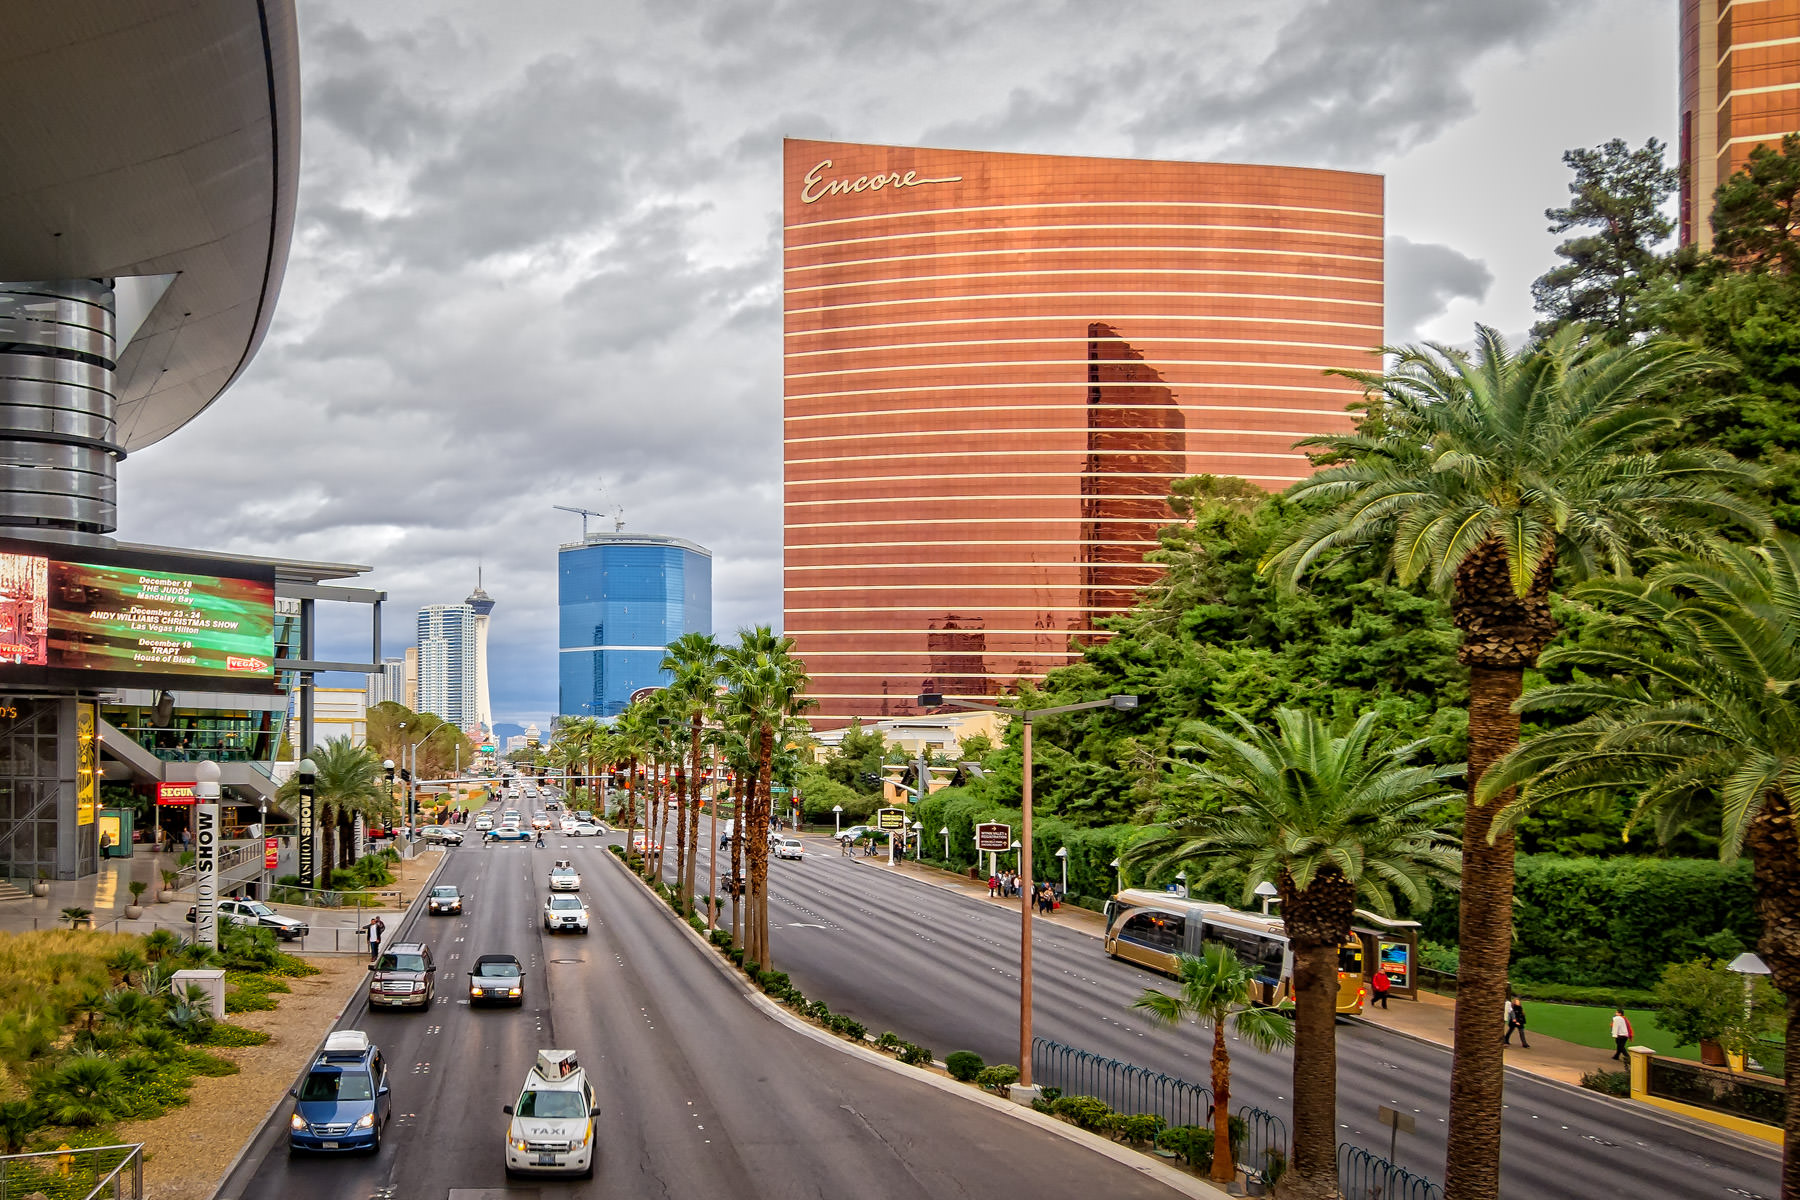 The Las Vegas Strip looking northward as seen from a pedestrian bridge adjacent to the Fashion Show Mall.